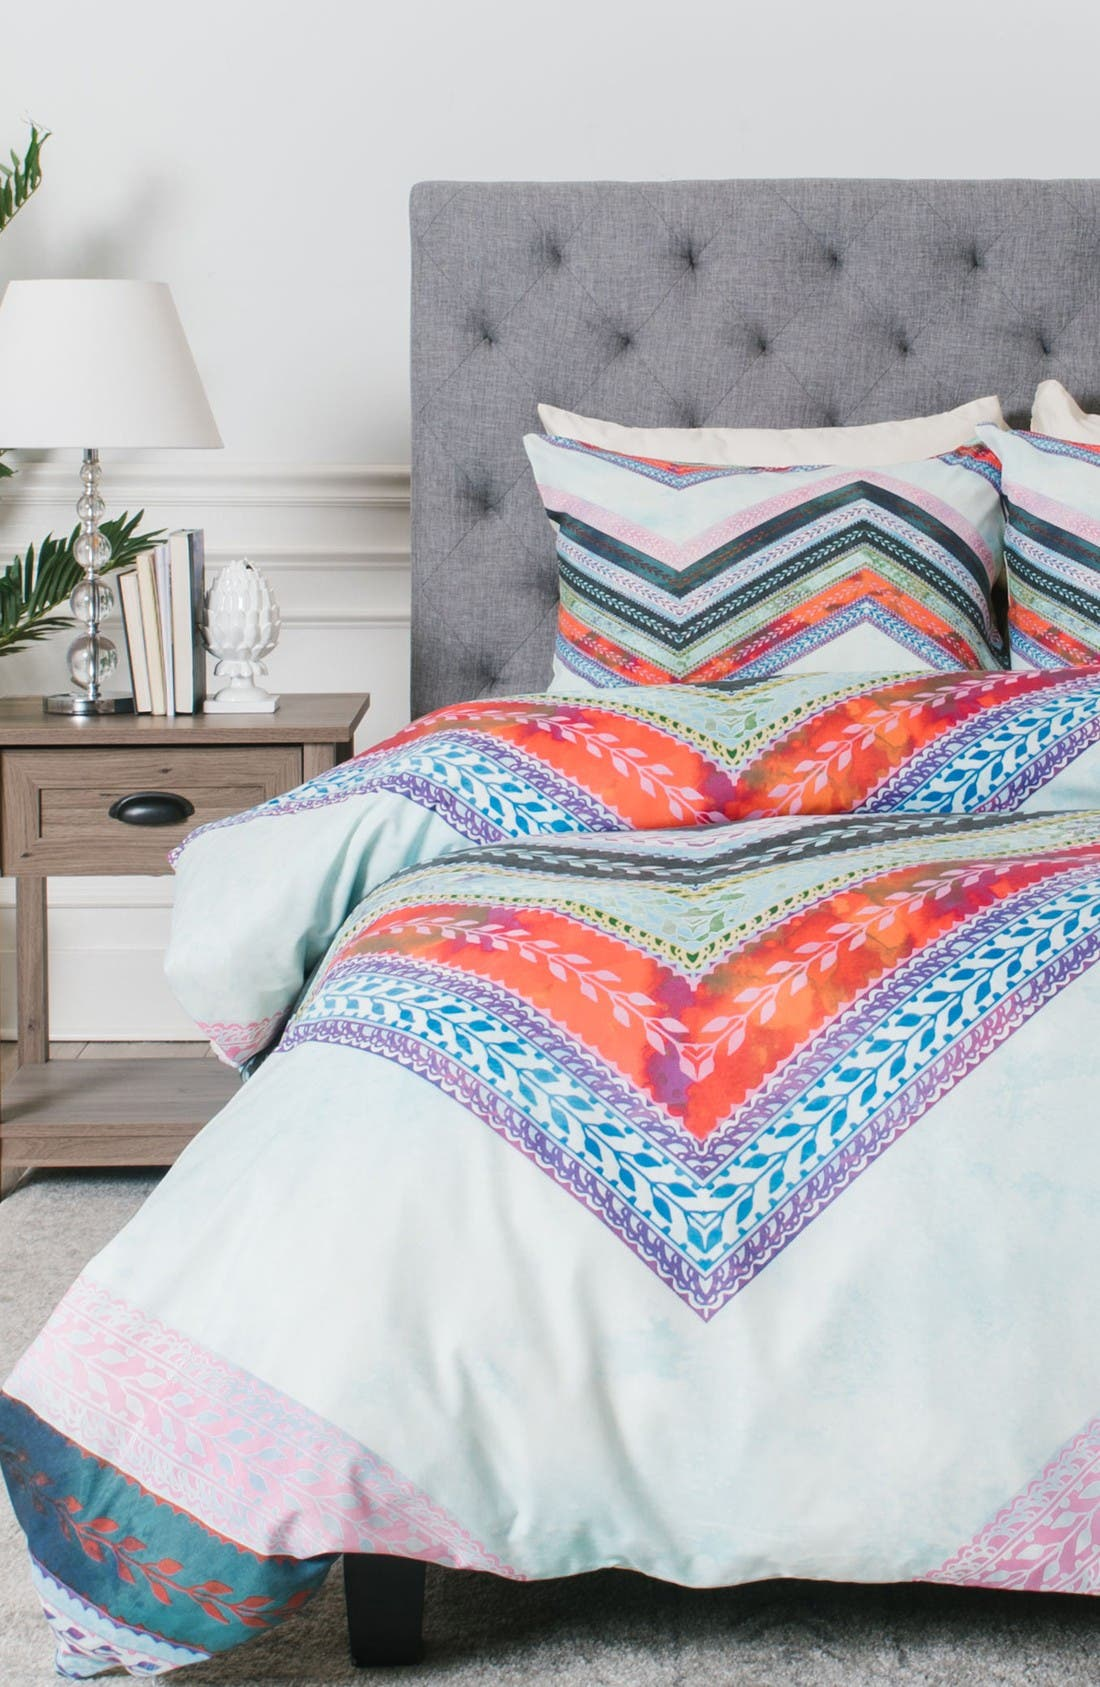 DENY Designs Boho Chevron Duvet Cover & Sham Set